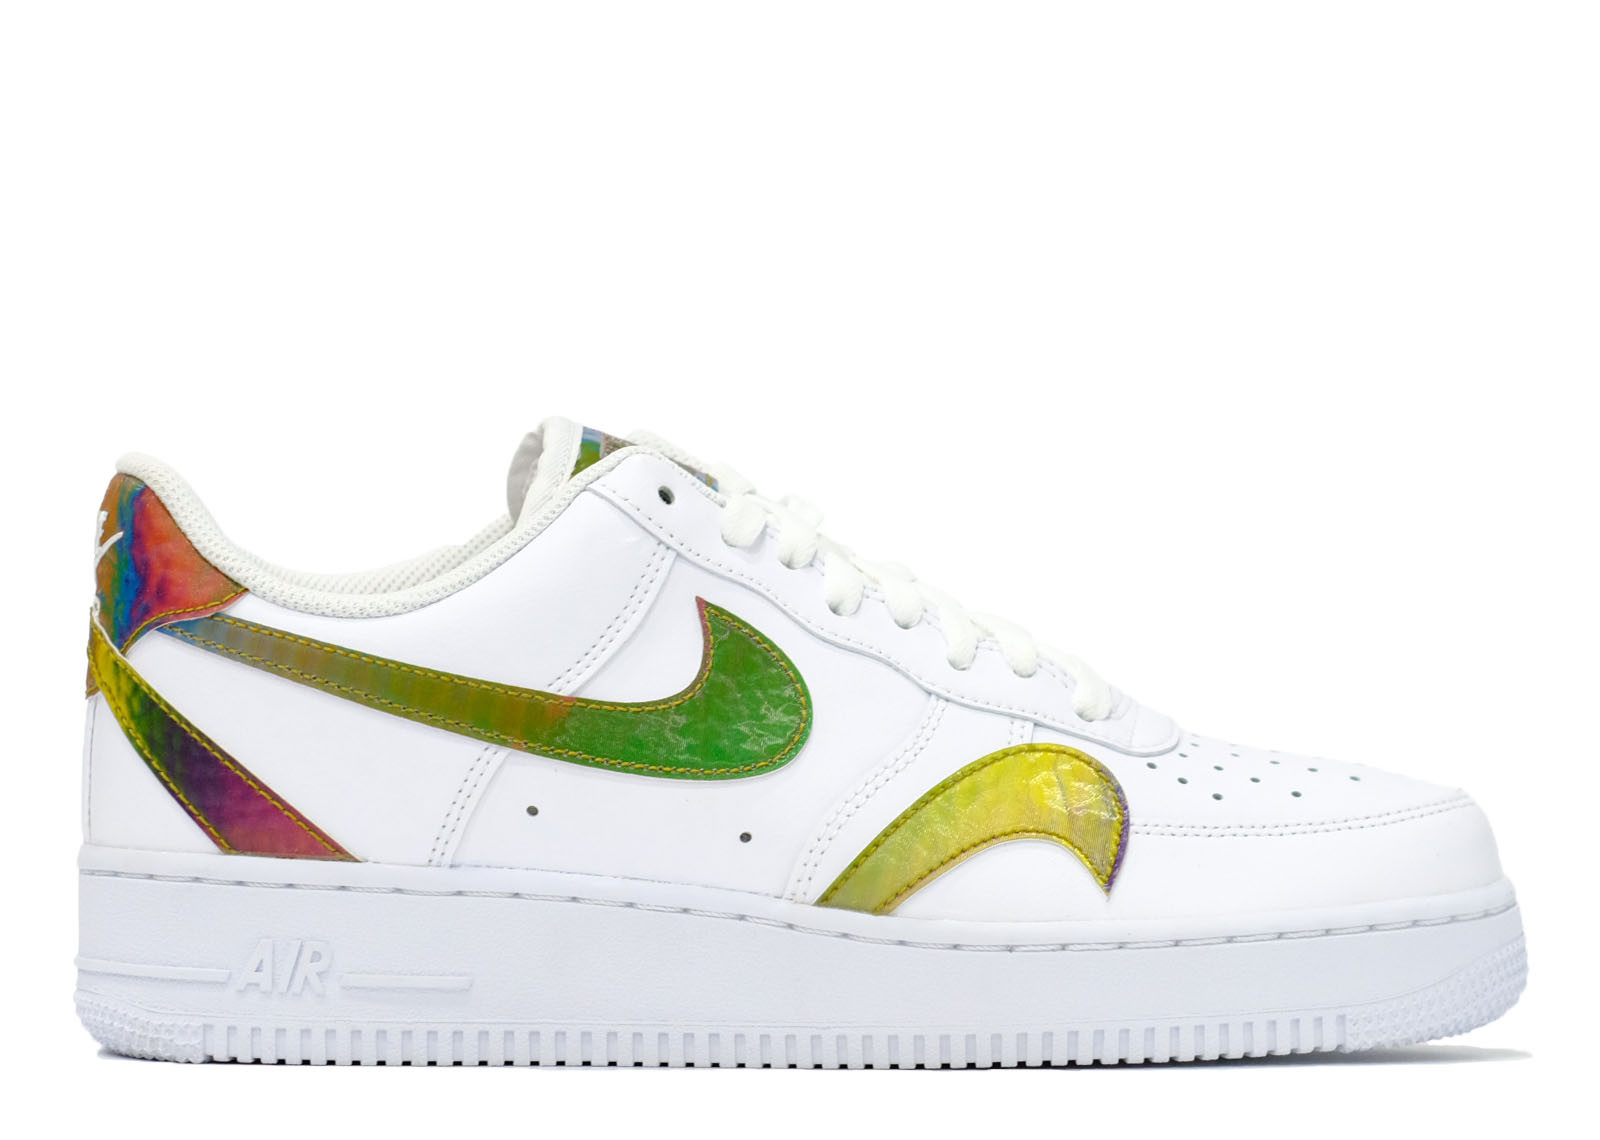 AIR FORCE 1 Misplaced Swooshes White  image 1